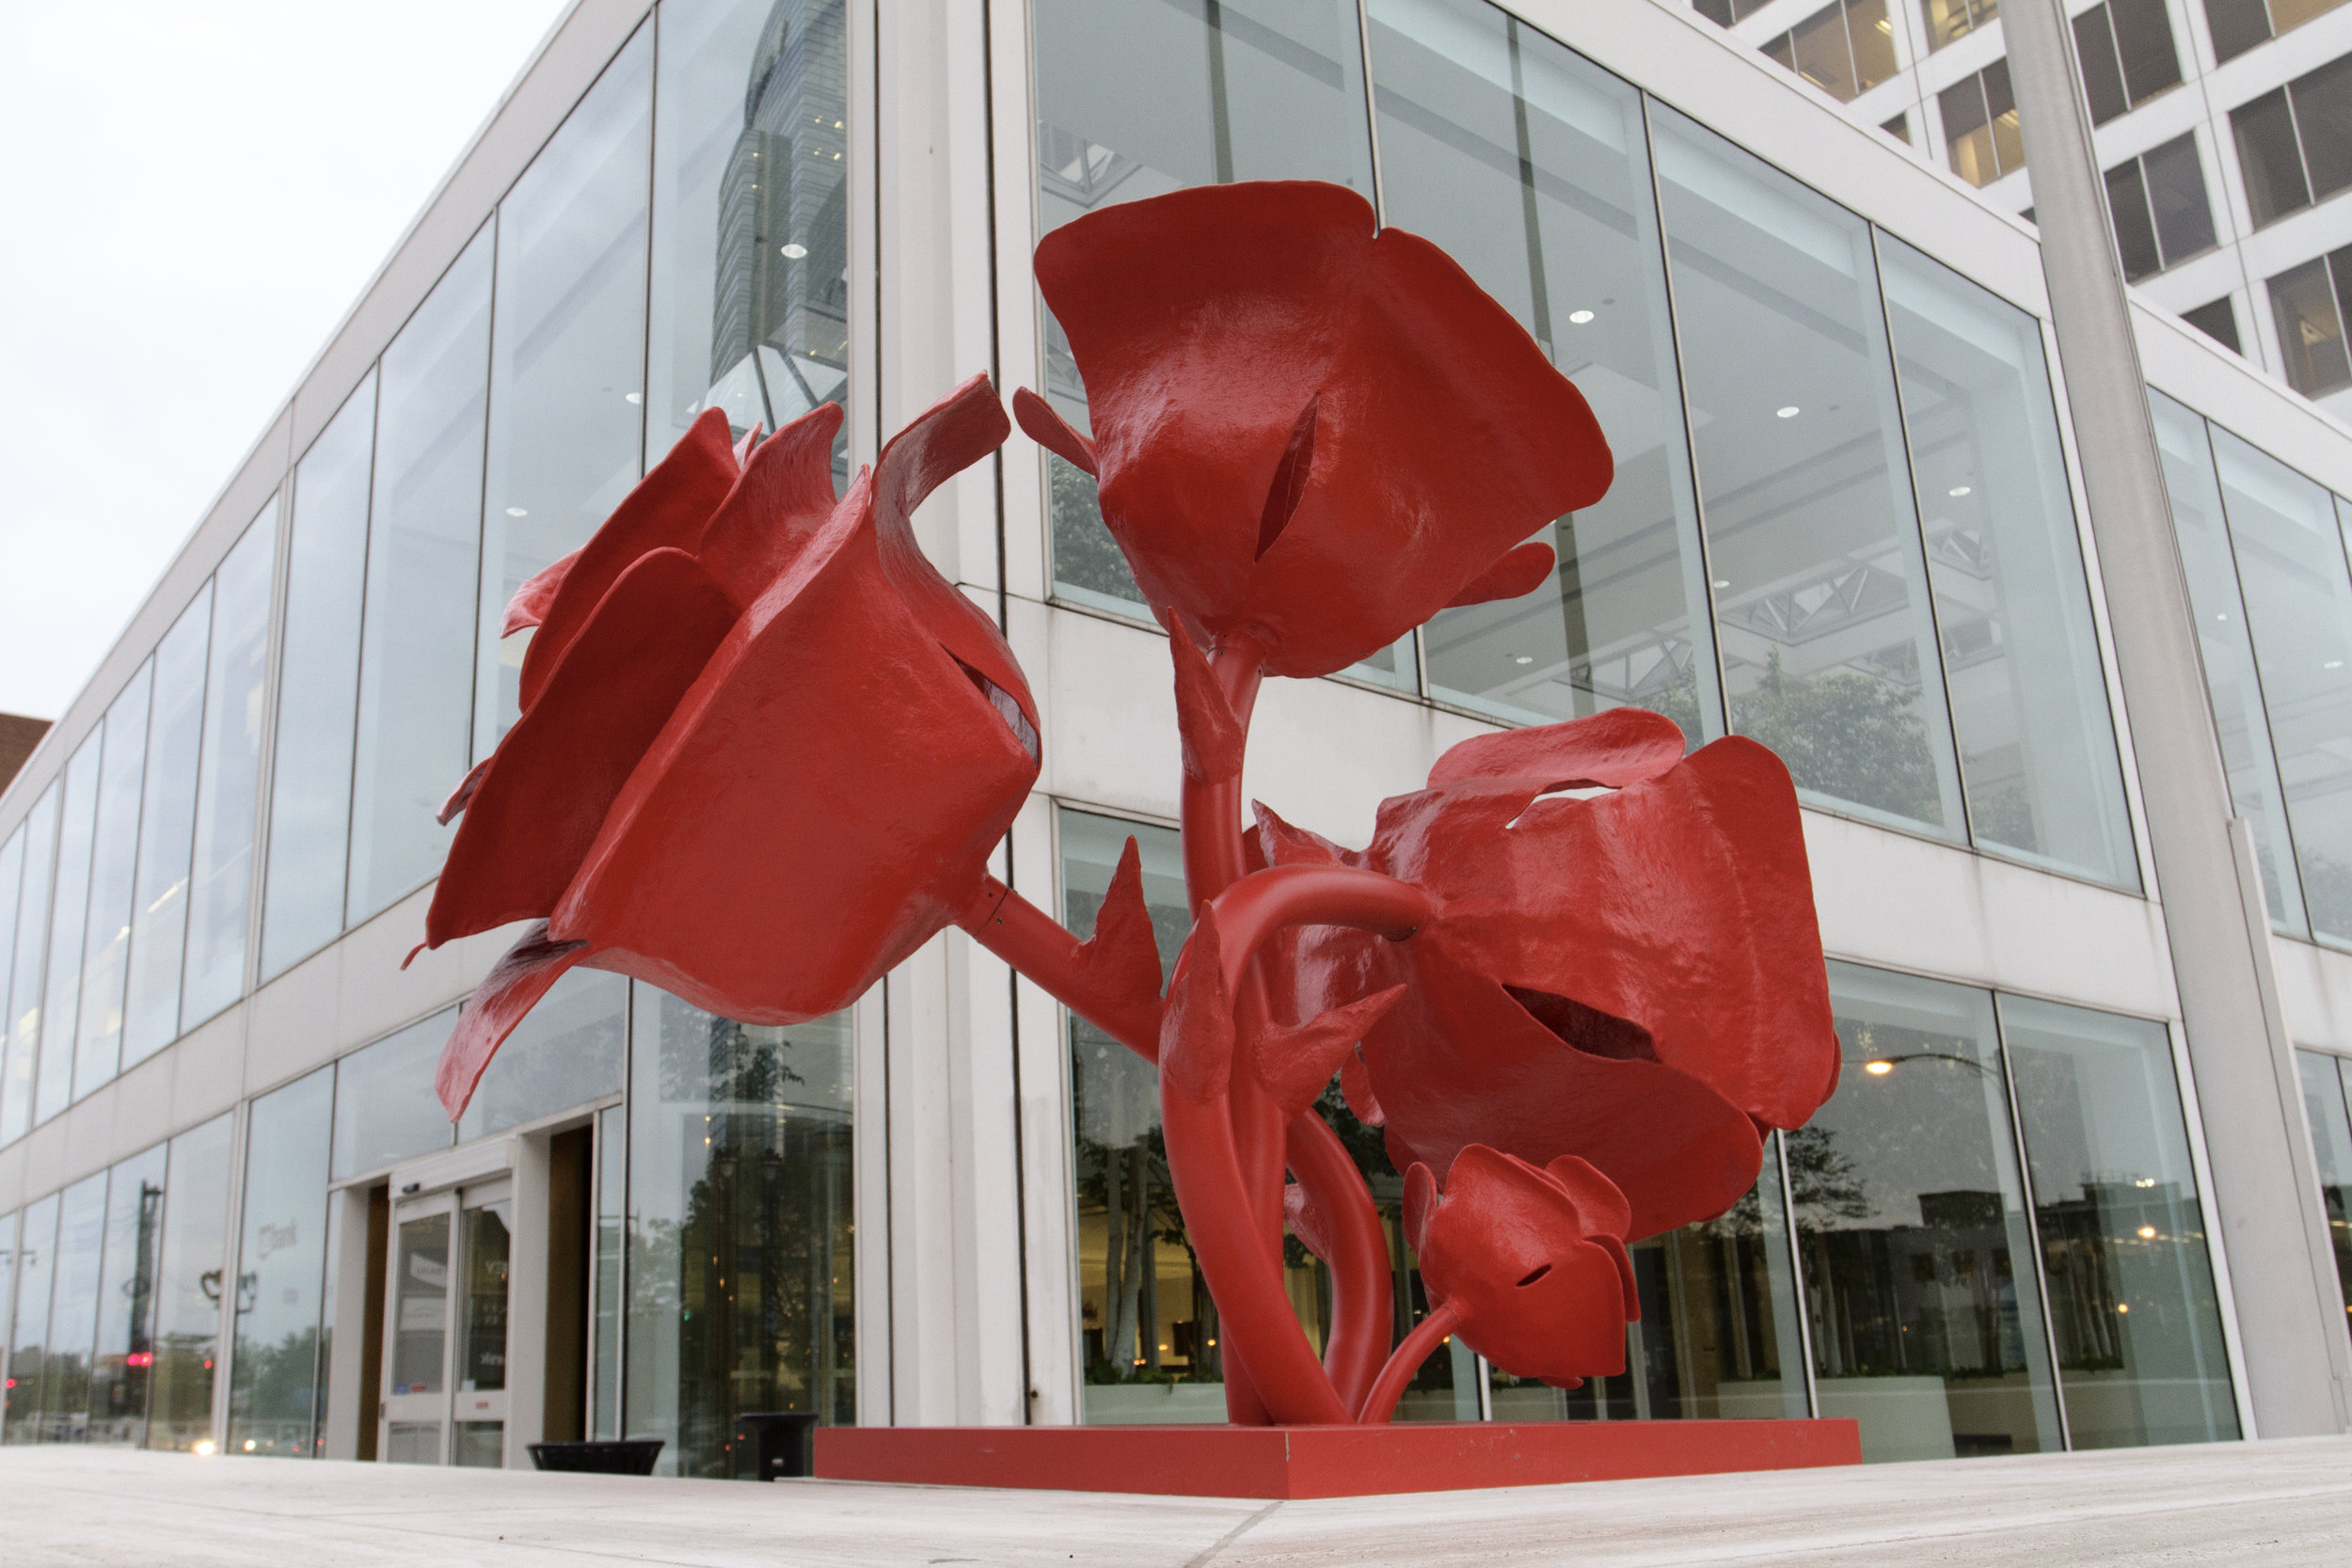 Be sure to stop during your visit to see the stunning artwork installed along Wisconsin Avenue every June - October.